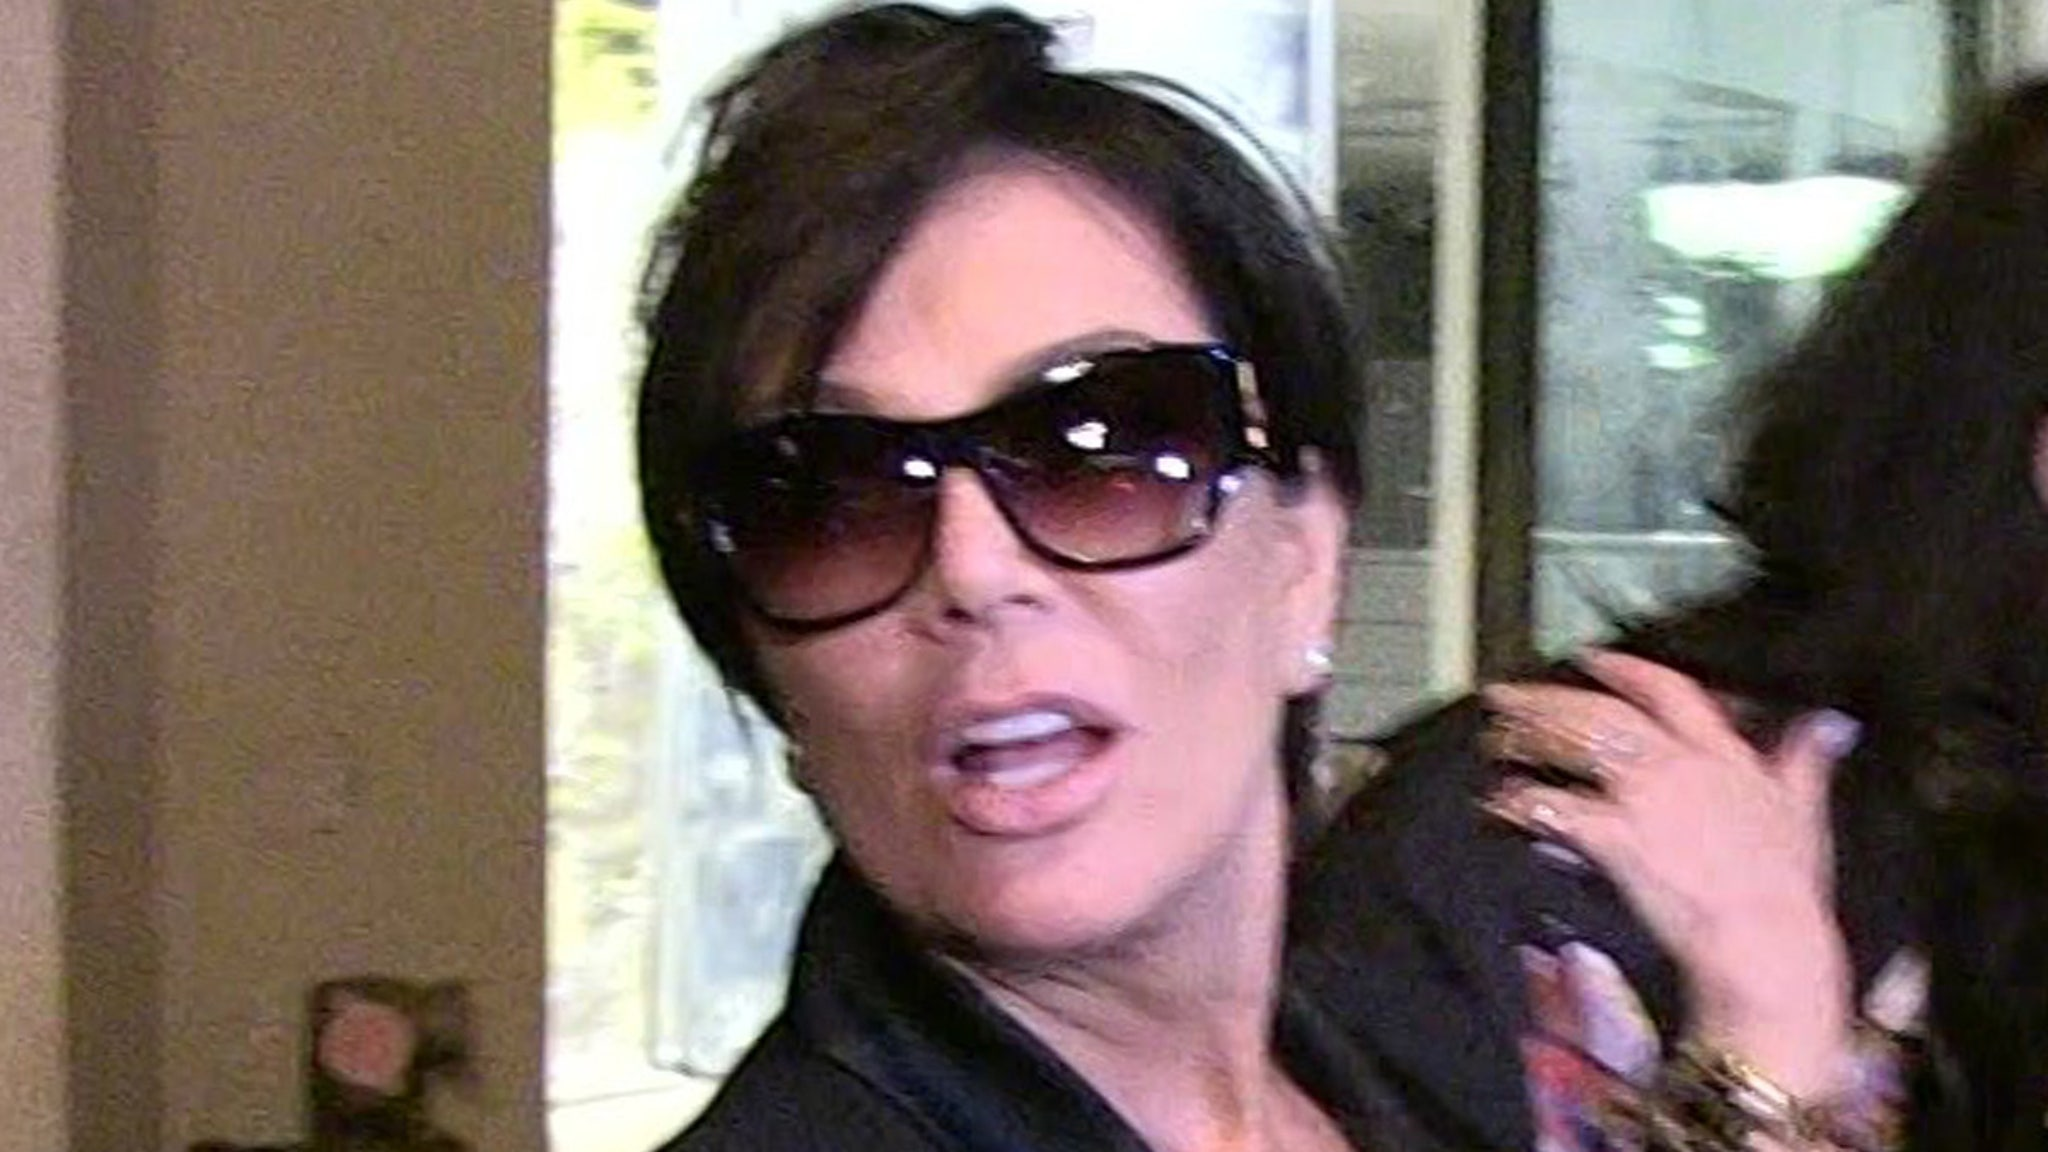 Kris Jenner Calls BS on Security Guard's Sexual Harassment Suit